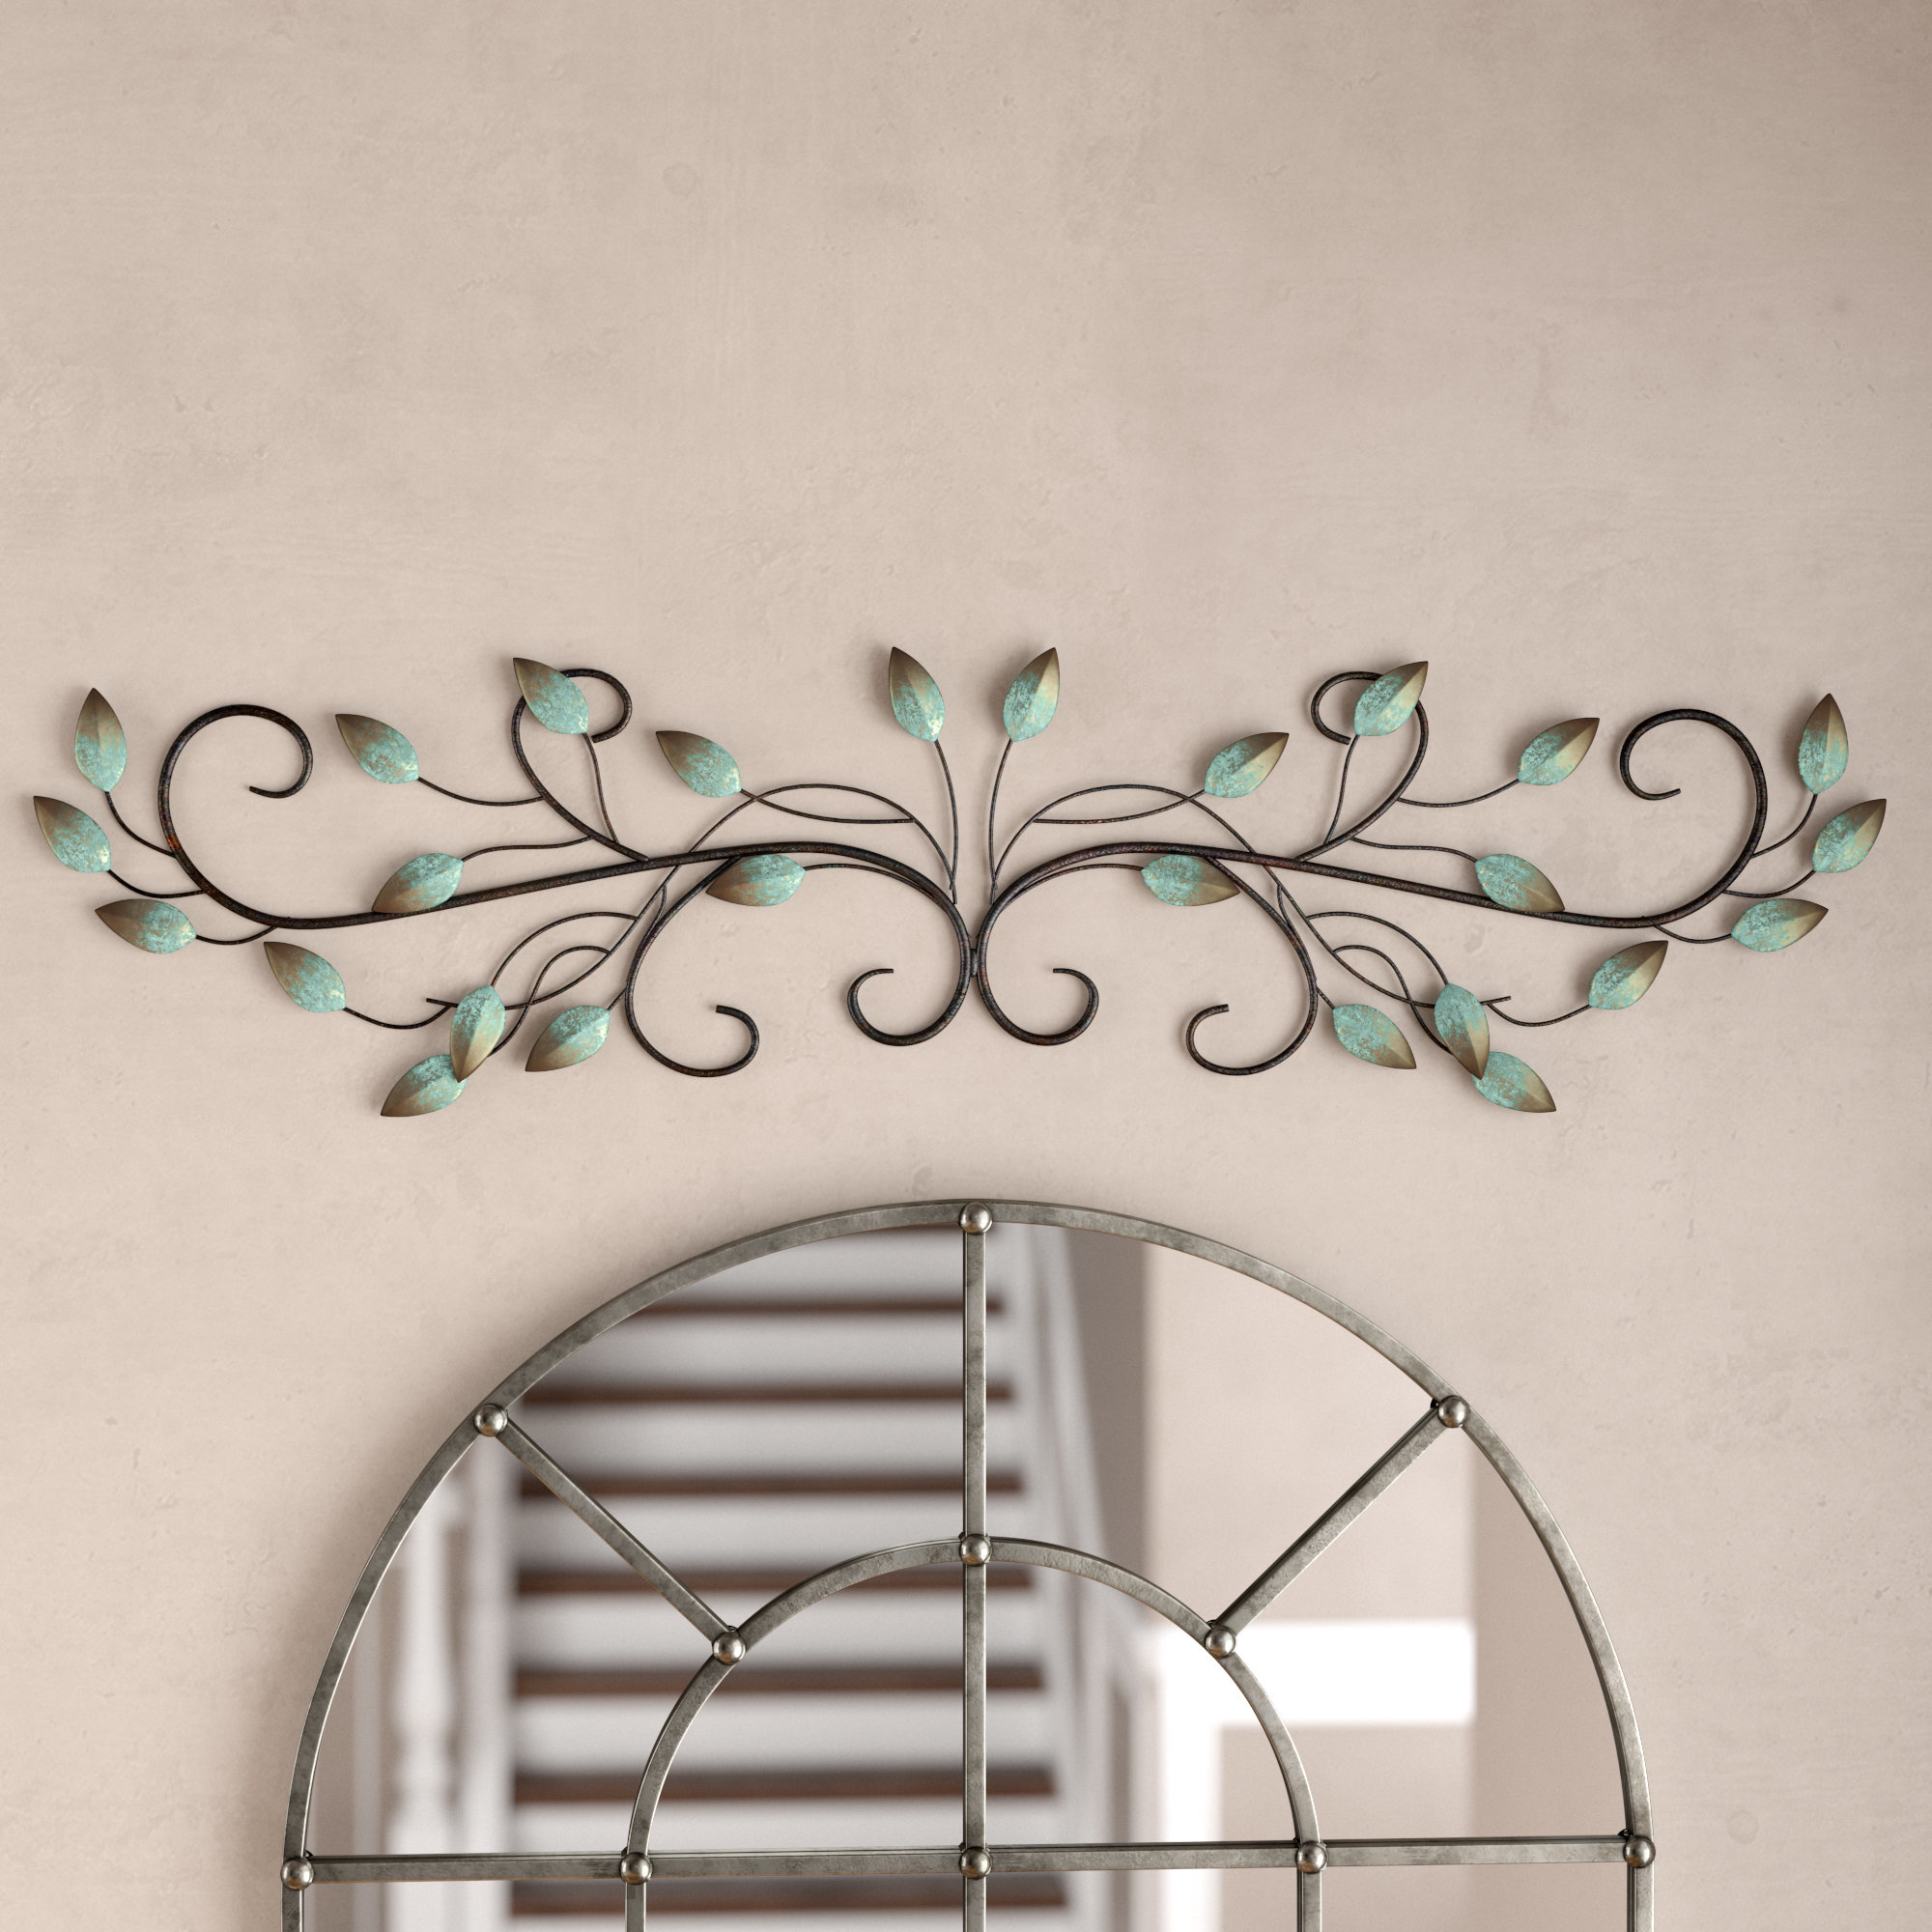 Flowing Leaves Wall Decor | Wayfair inside Flowing Leaves Wall Decor (Image 14 of 30)